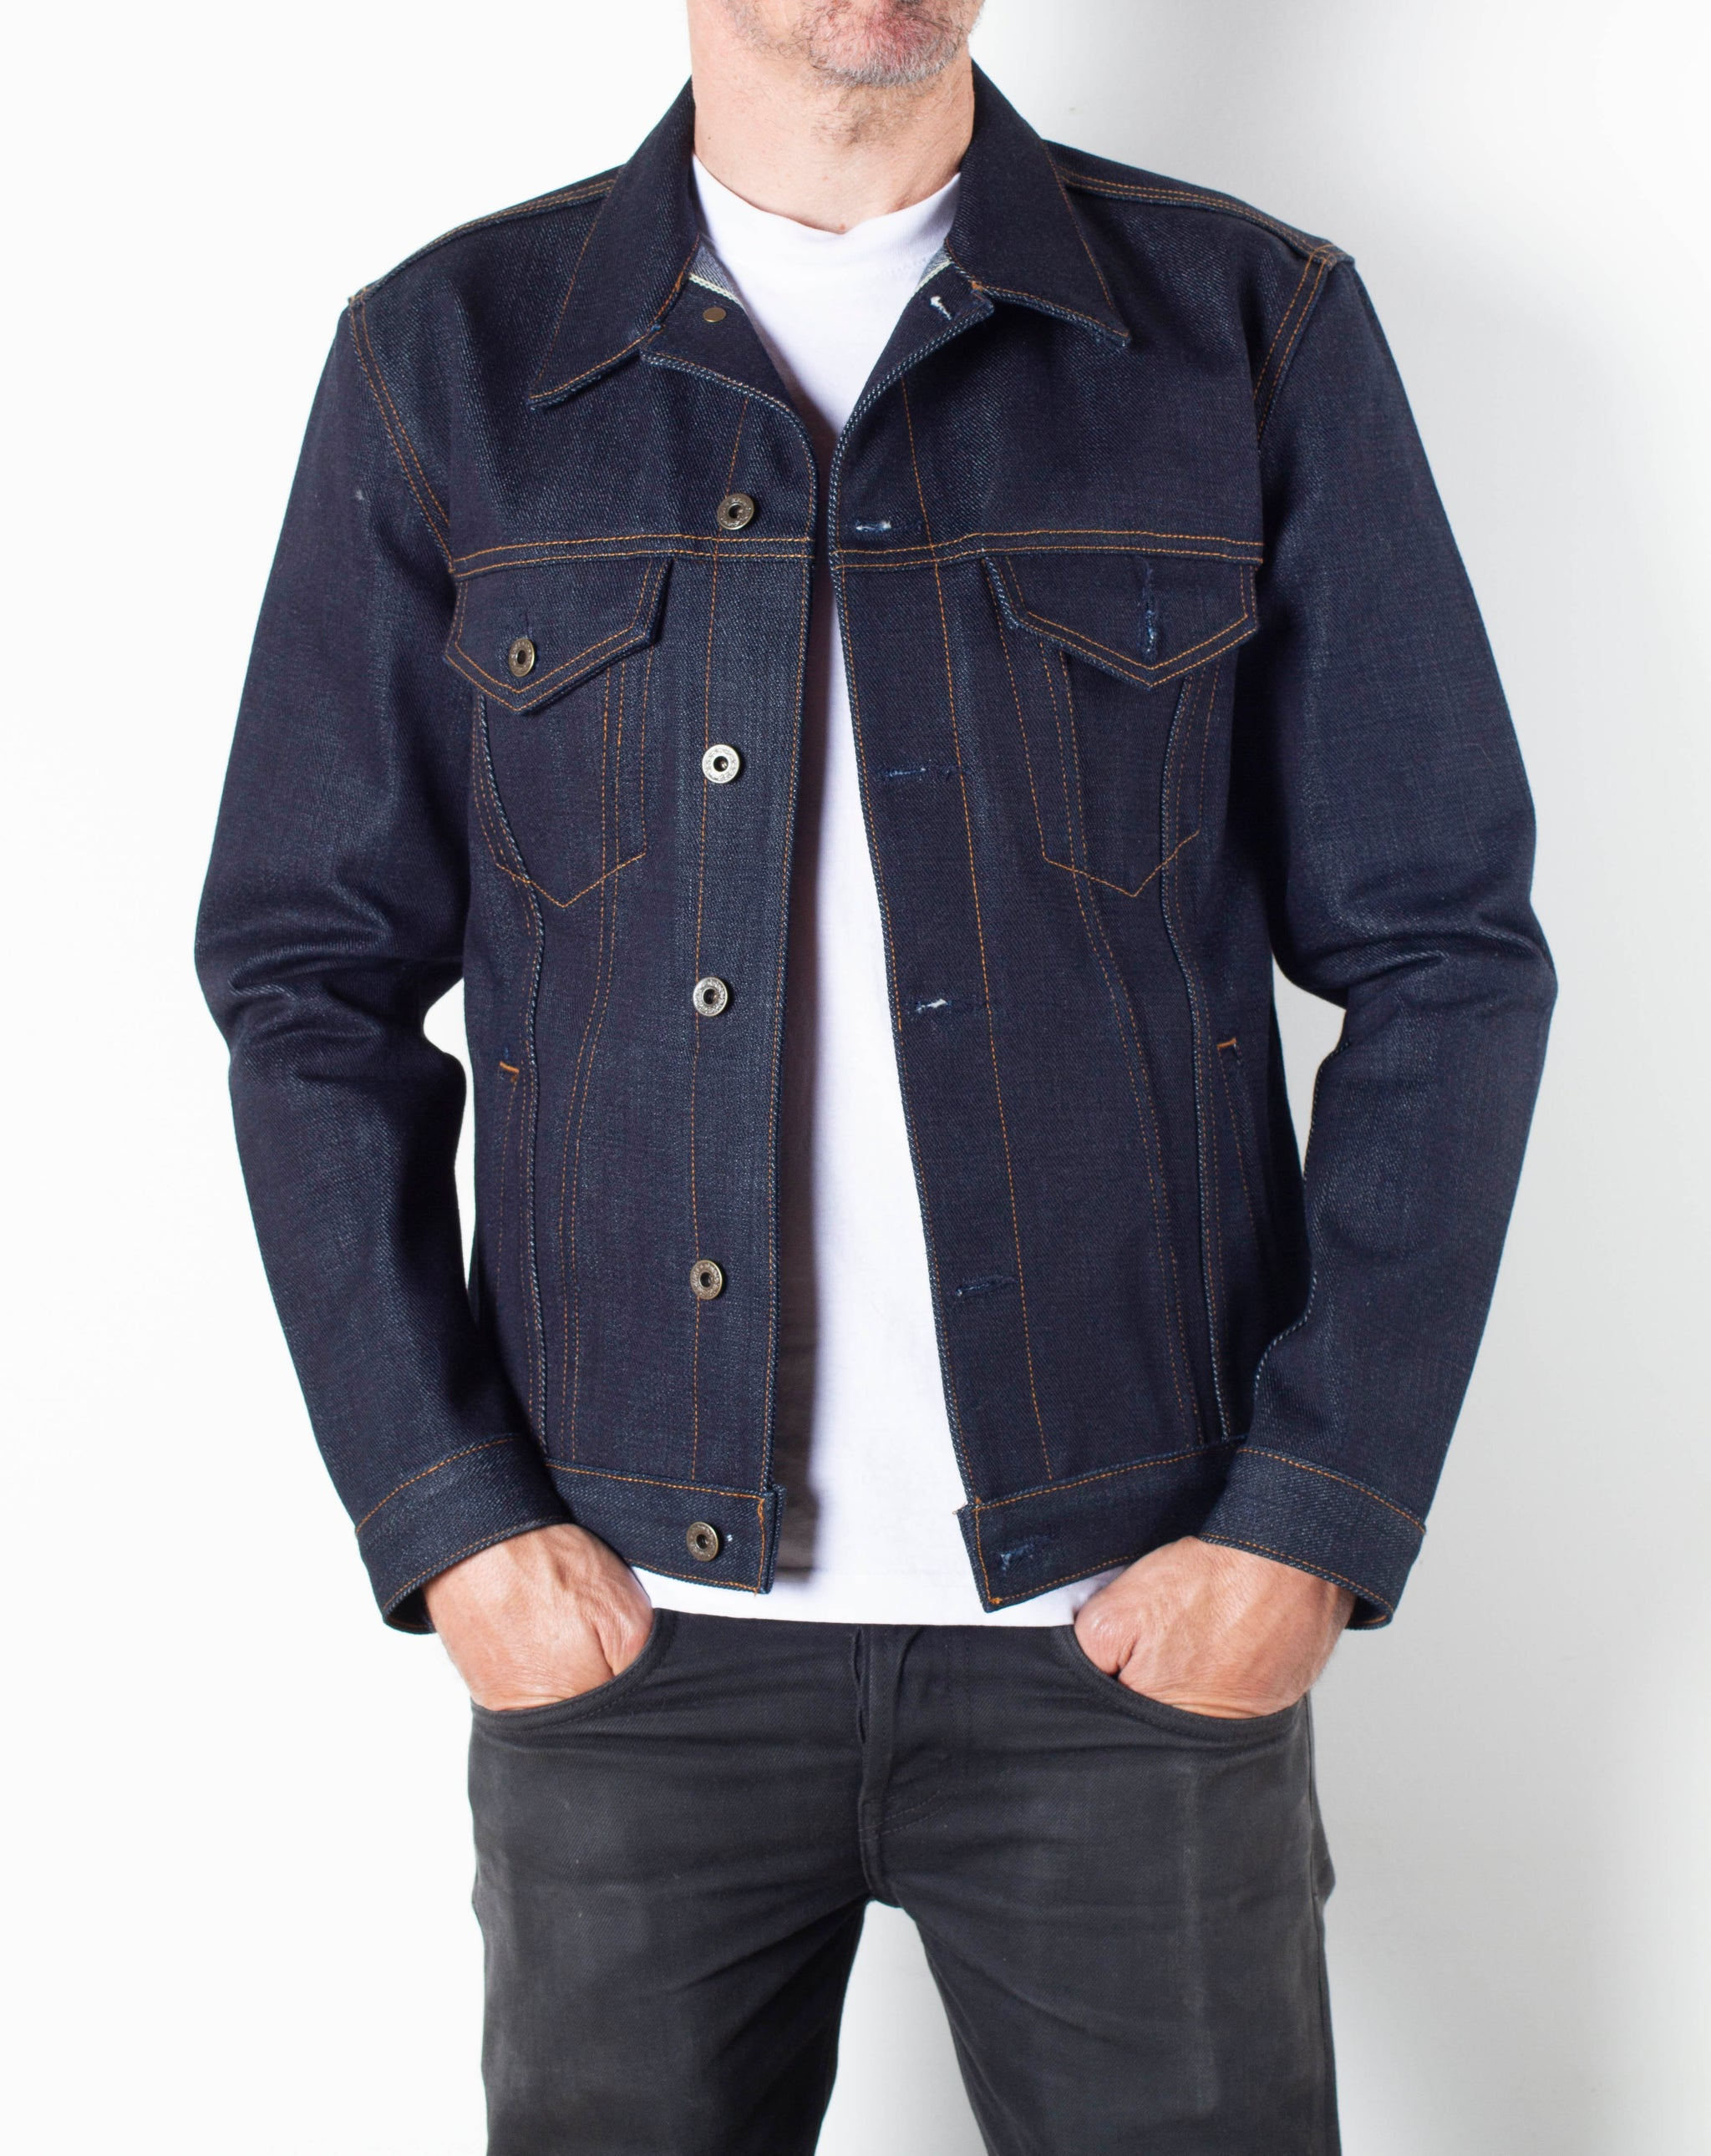 The Ironside 18oz 'Slubverter II' Heavyweight Selvage Denim Jacket